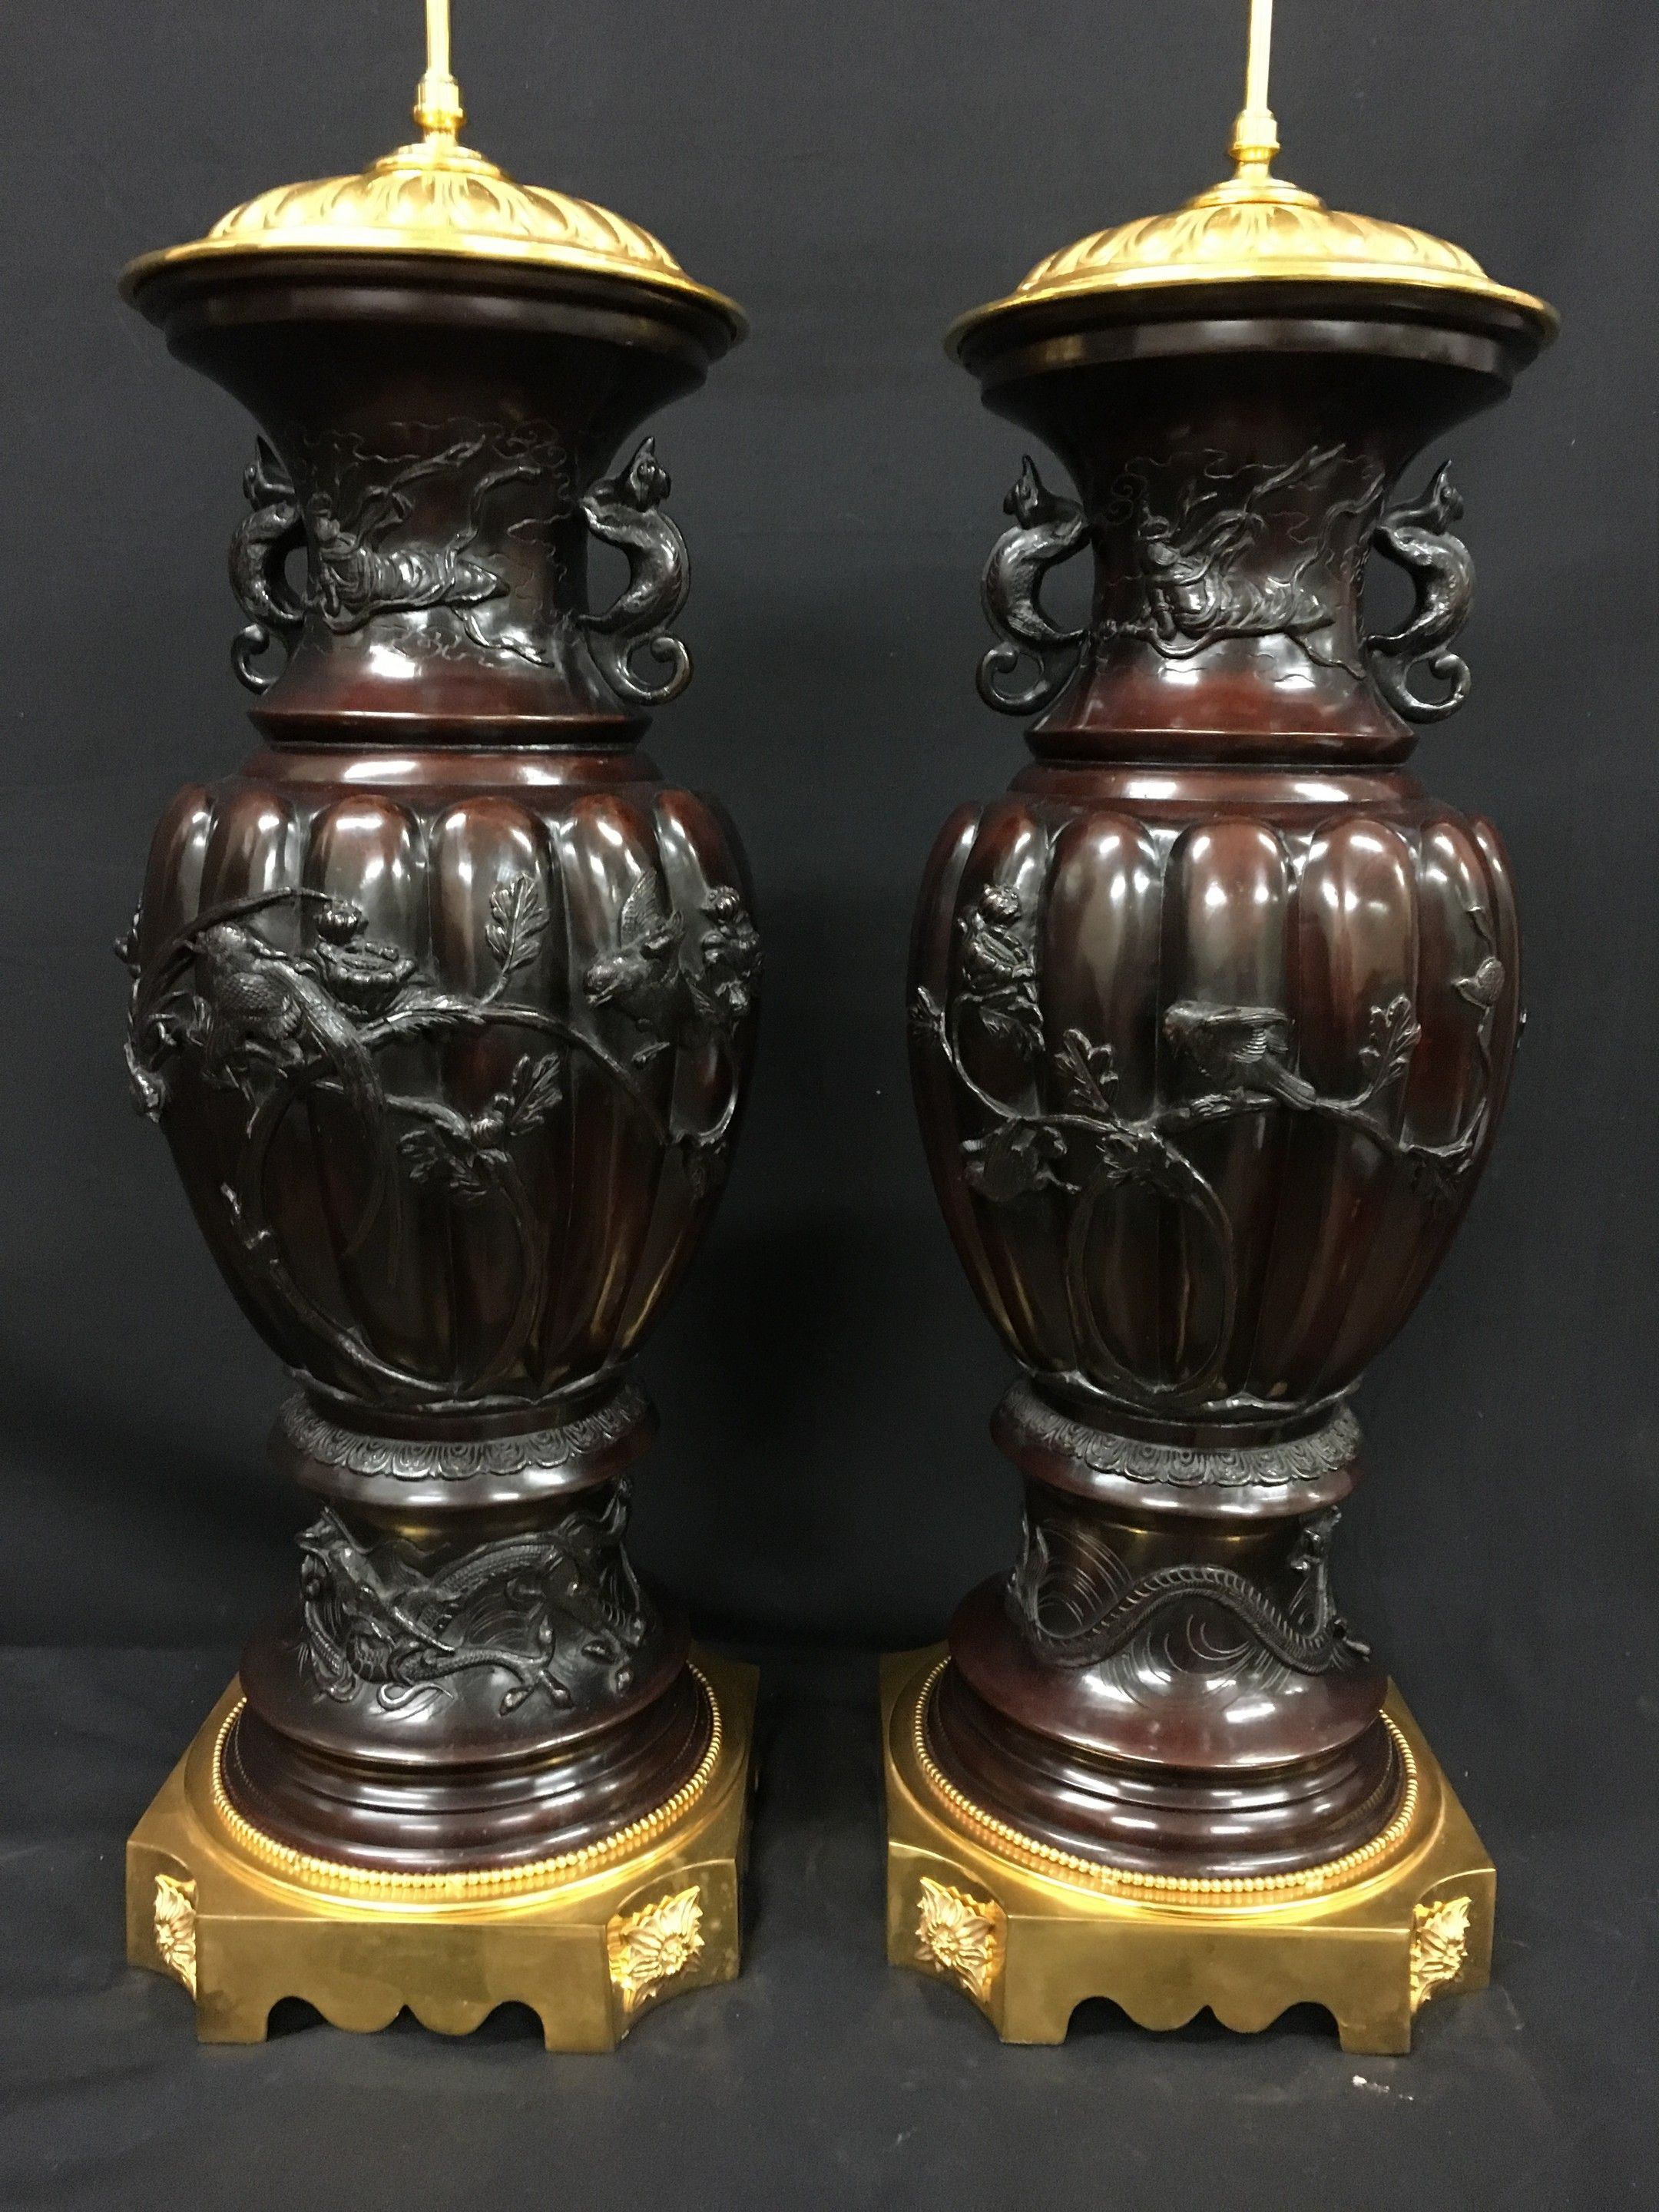 17 Stylish Chinese Red Lacquer Vase 2021 free download chinese red lacquer vase of antique japanese vases the uks premier antiques portal online with regard to pair large japanese bronze vases lamps